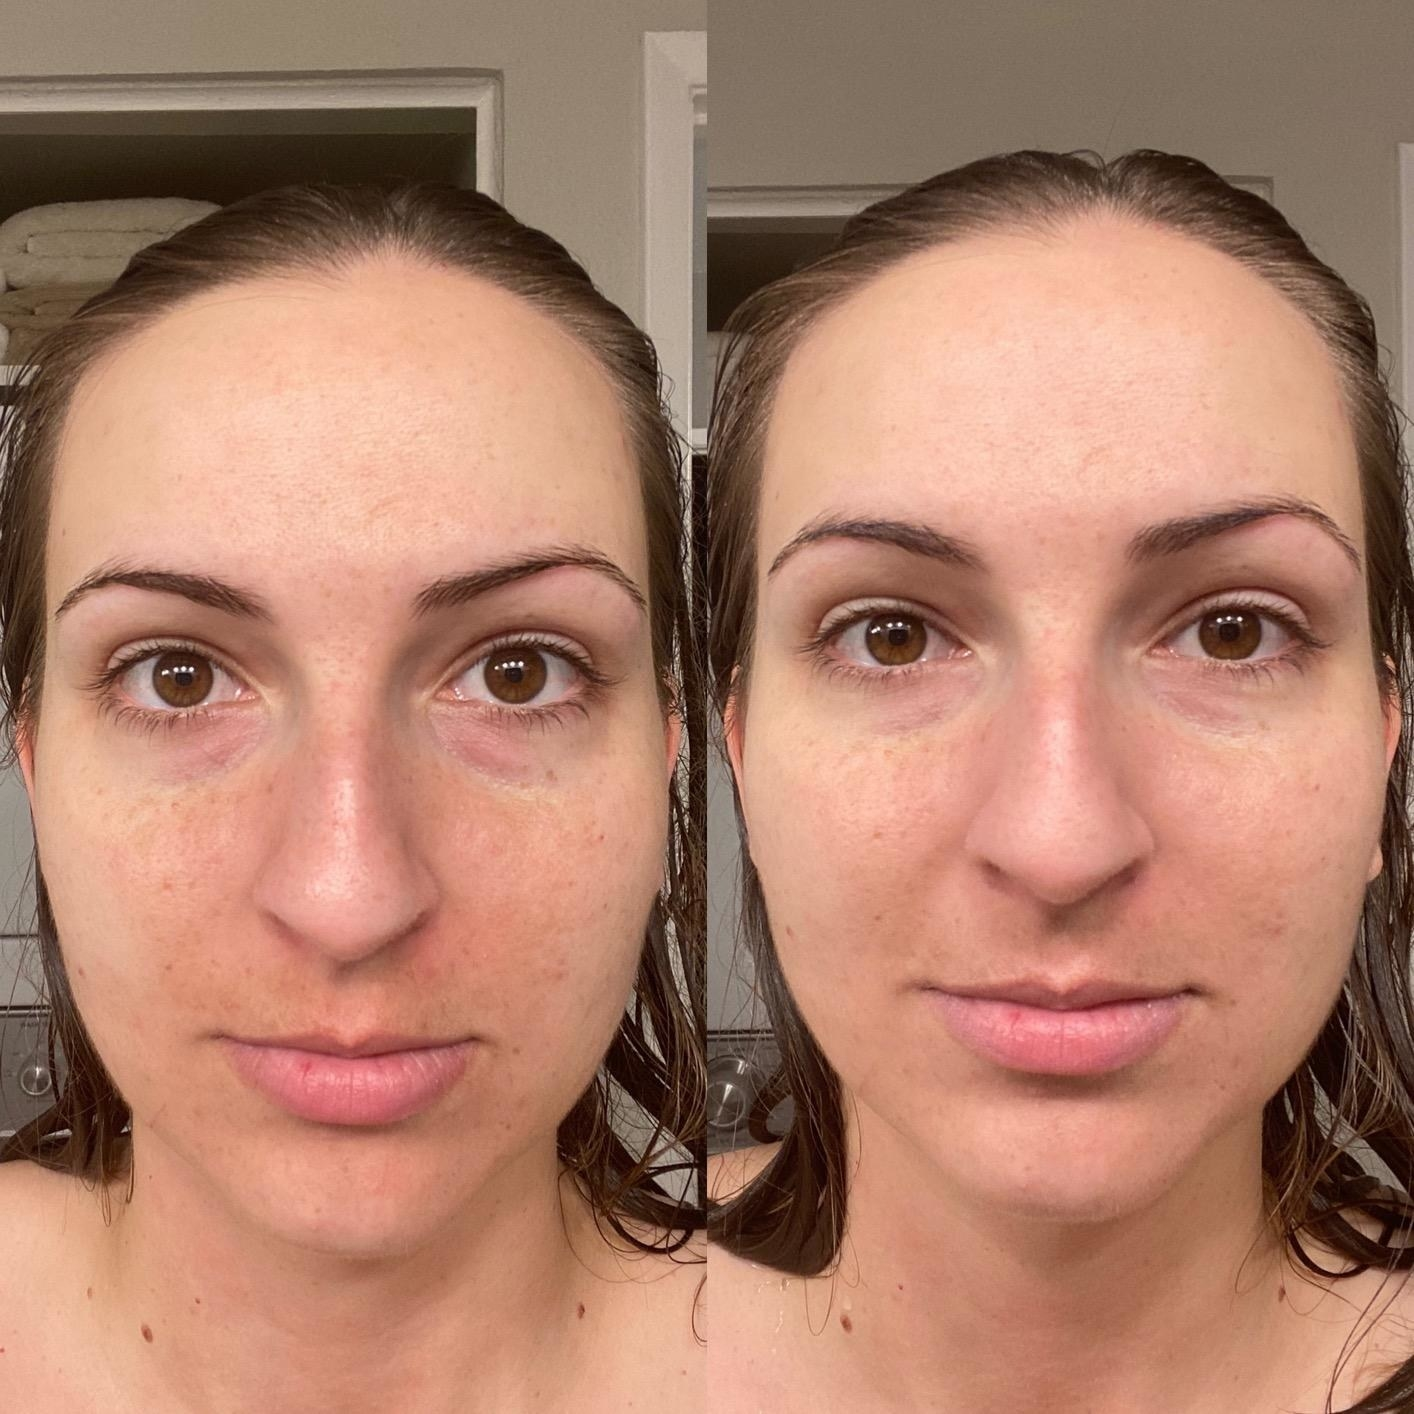 Before and after of reviewer wearing the sunscreen showing that it doesn't look greasy and that it provides a subtle tint